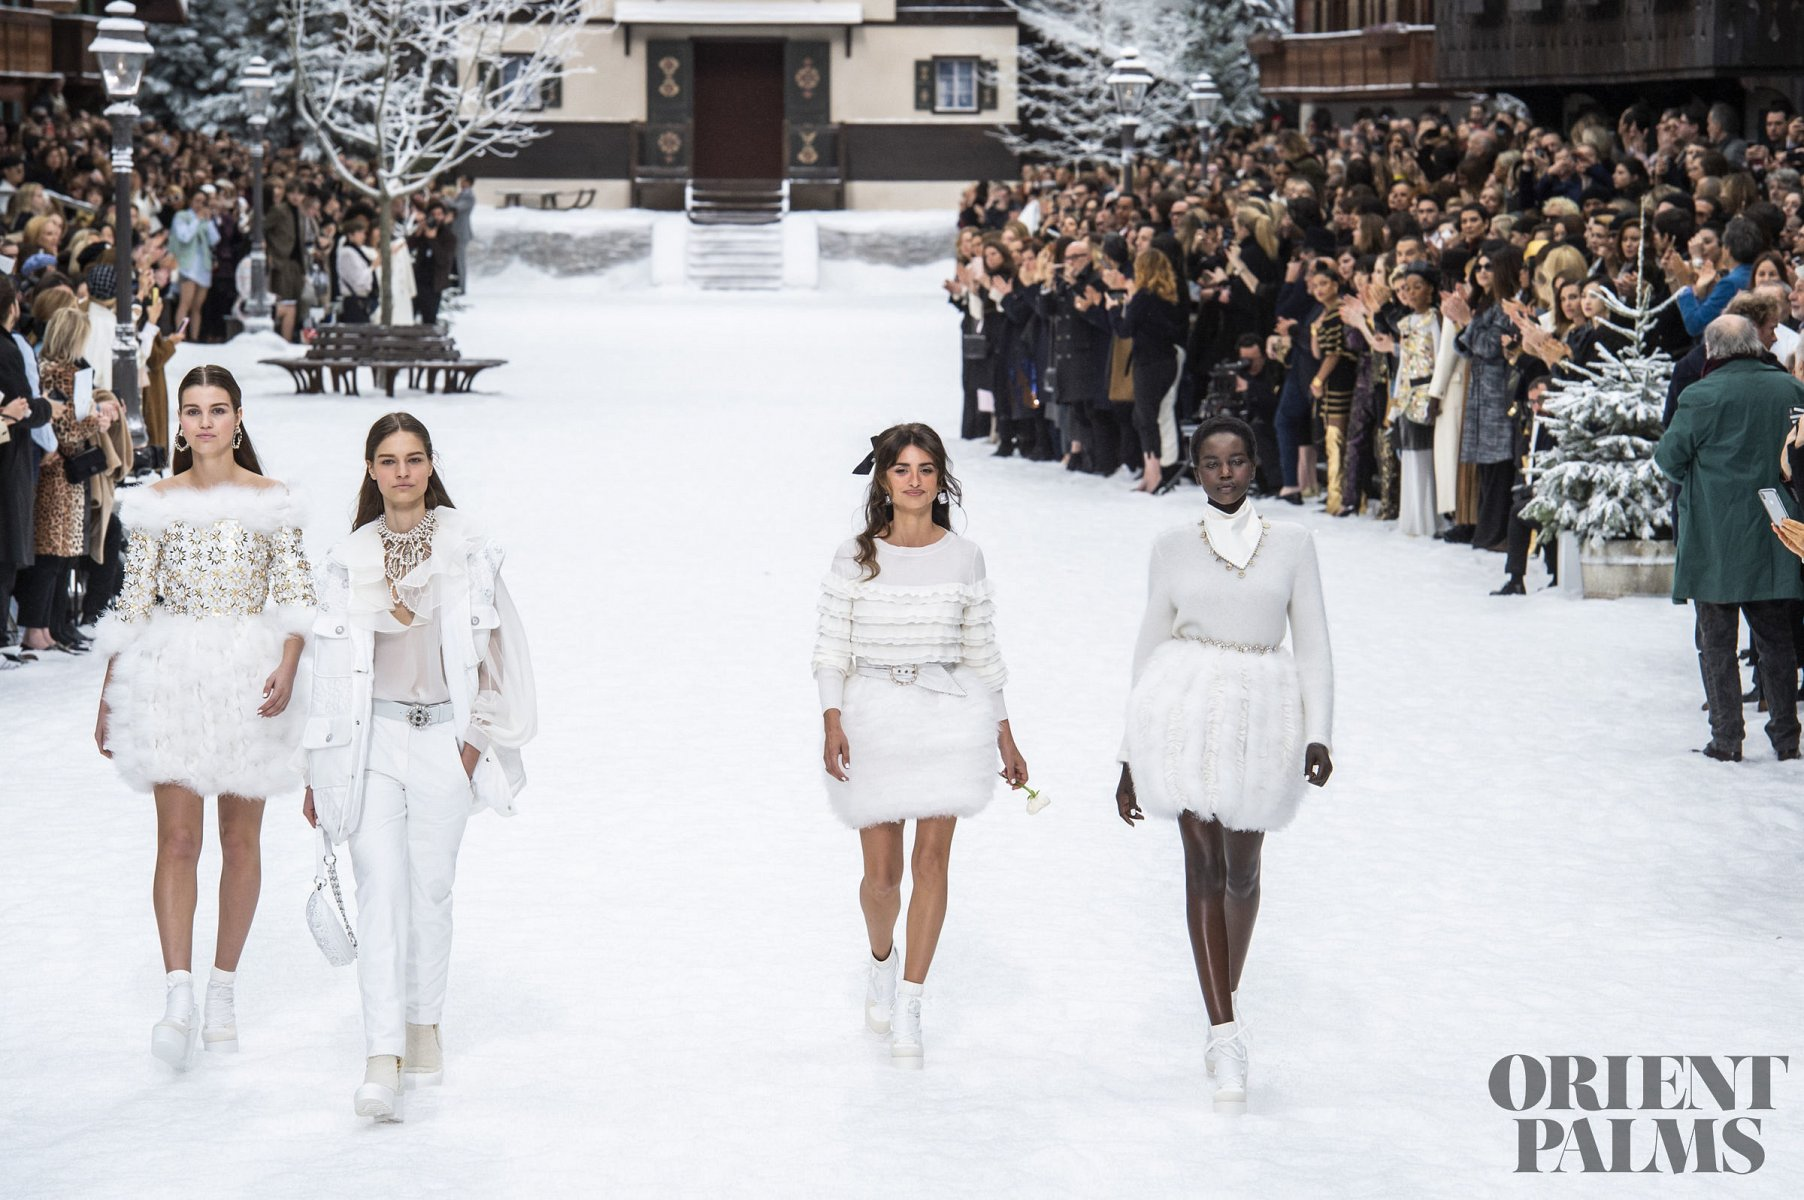 Chanel Herbst/Winter 2019-2020 - Pret-a-porter - 1